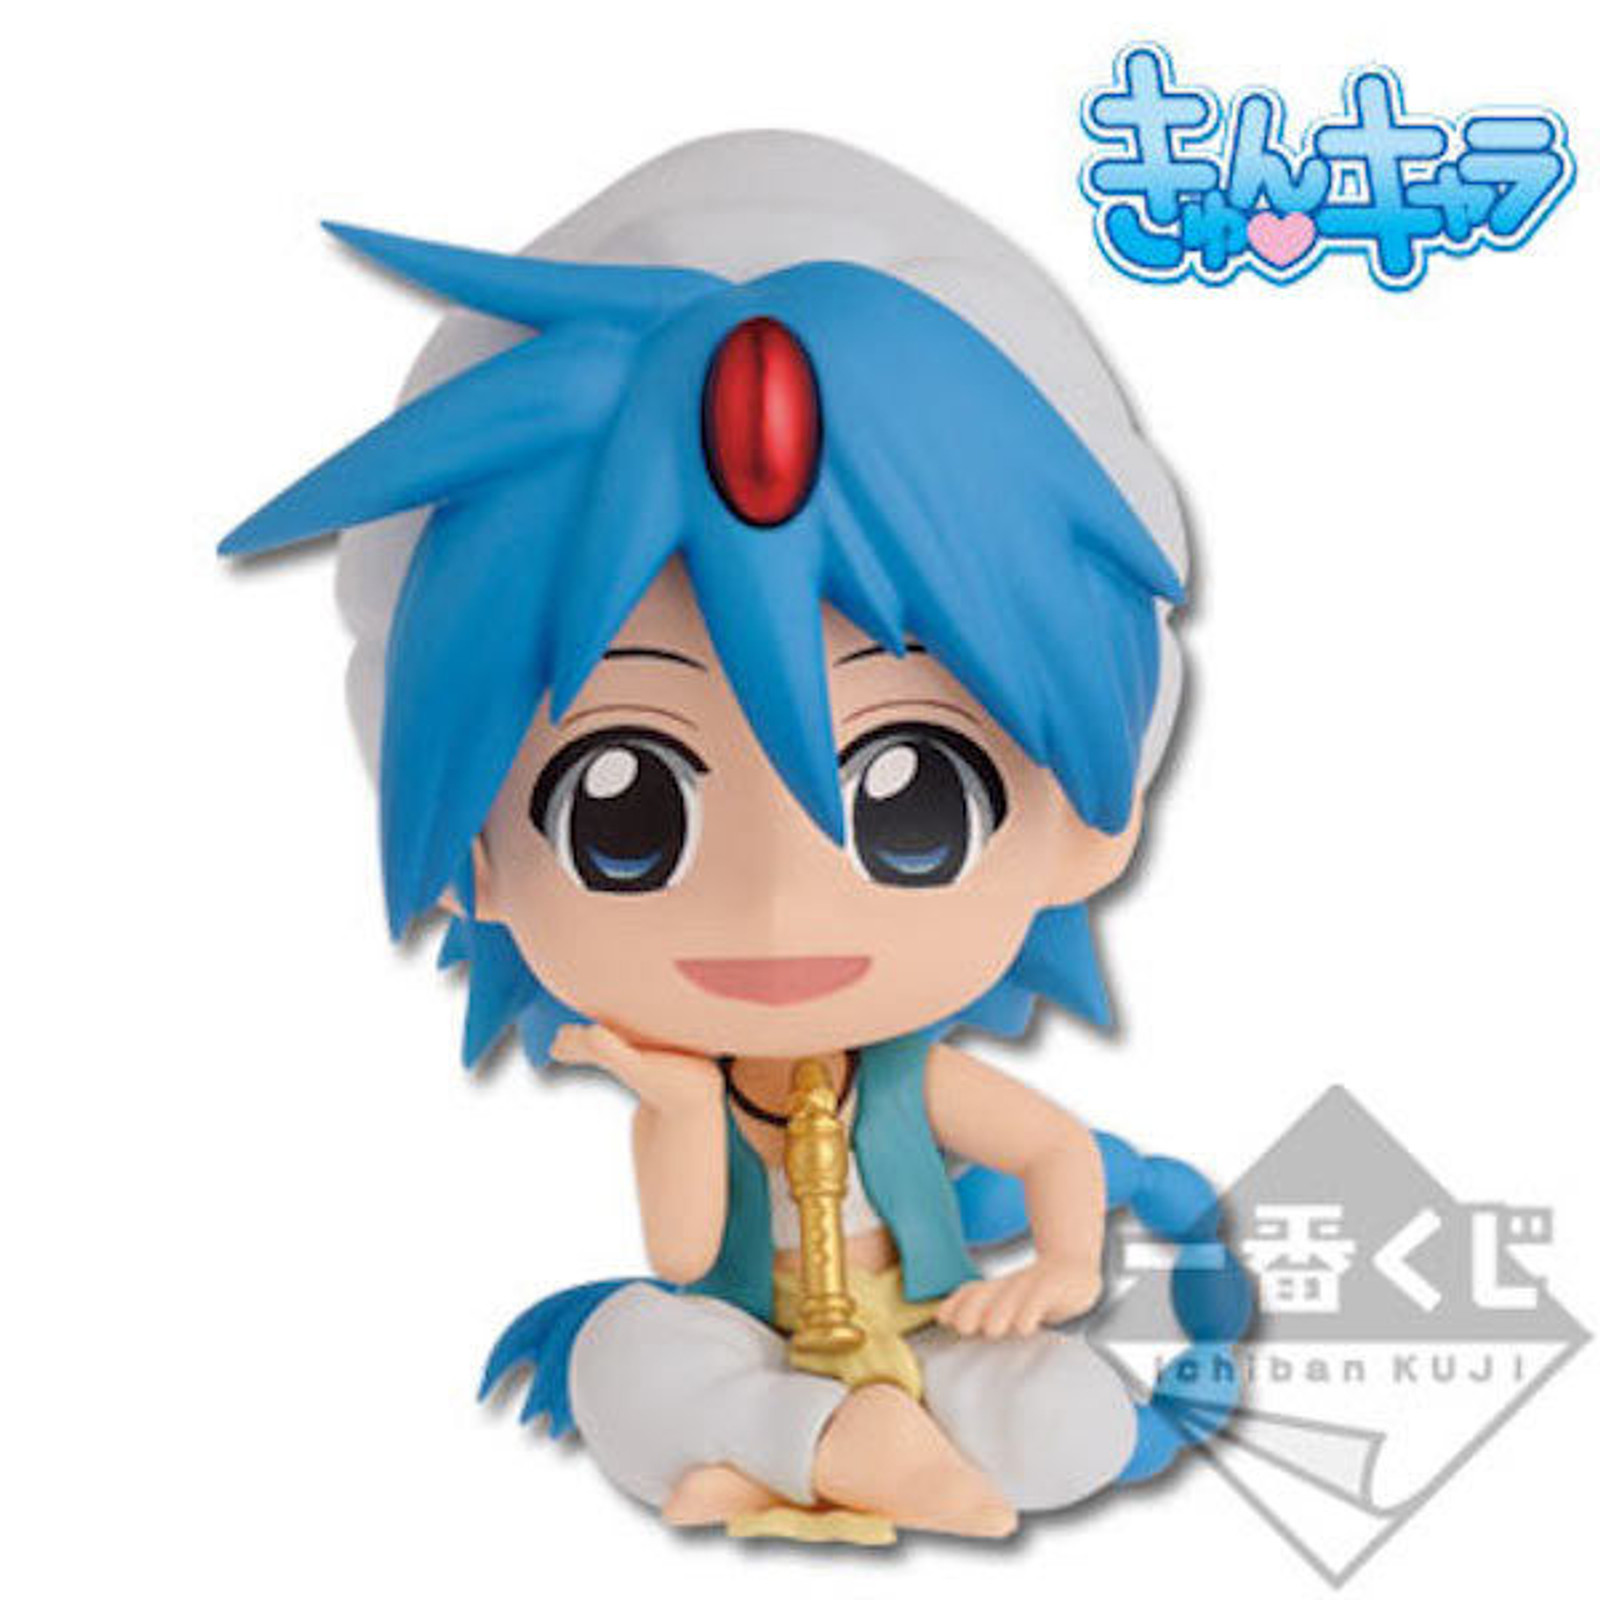 Magi The Labyrinth of Magic Aladdin Kyun Chara Figure Banpresto JAPAN ANIME